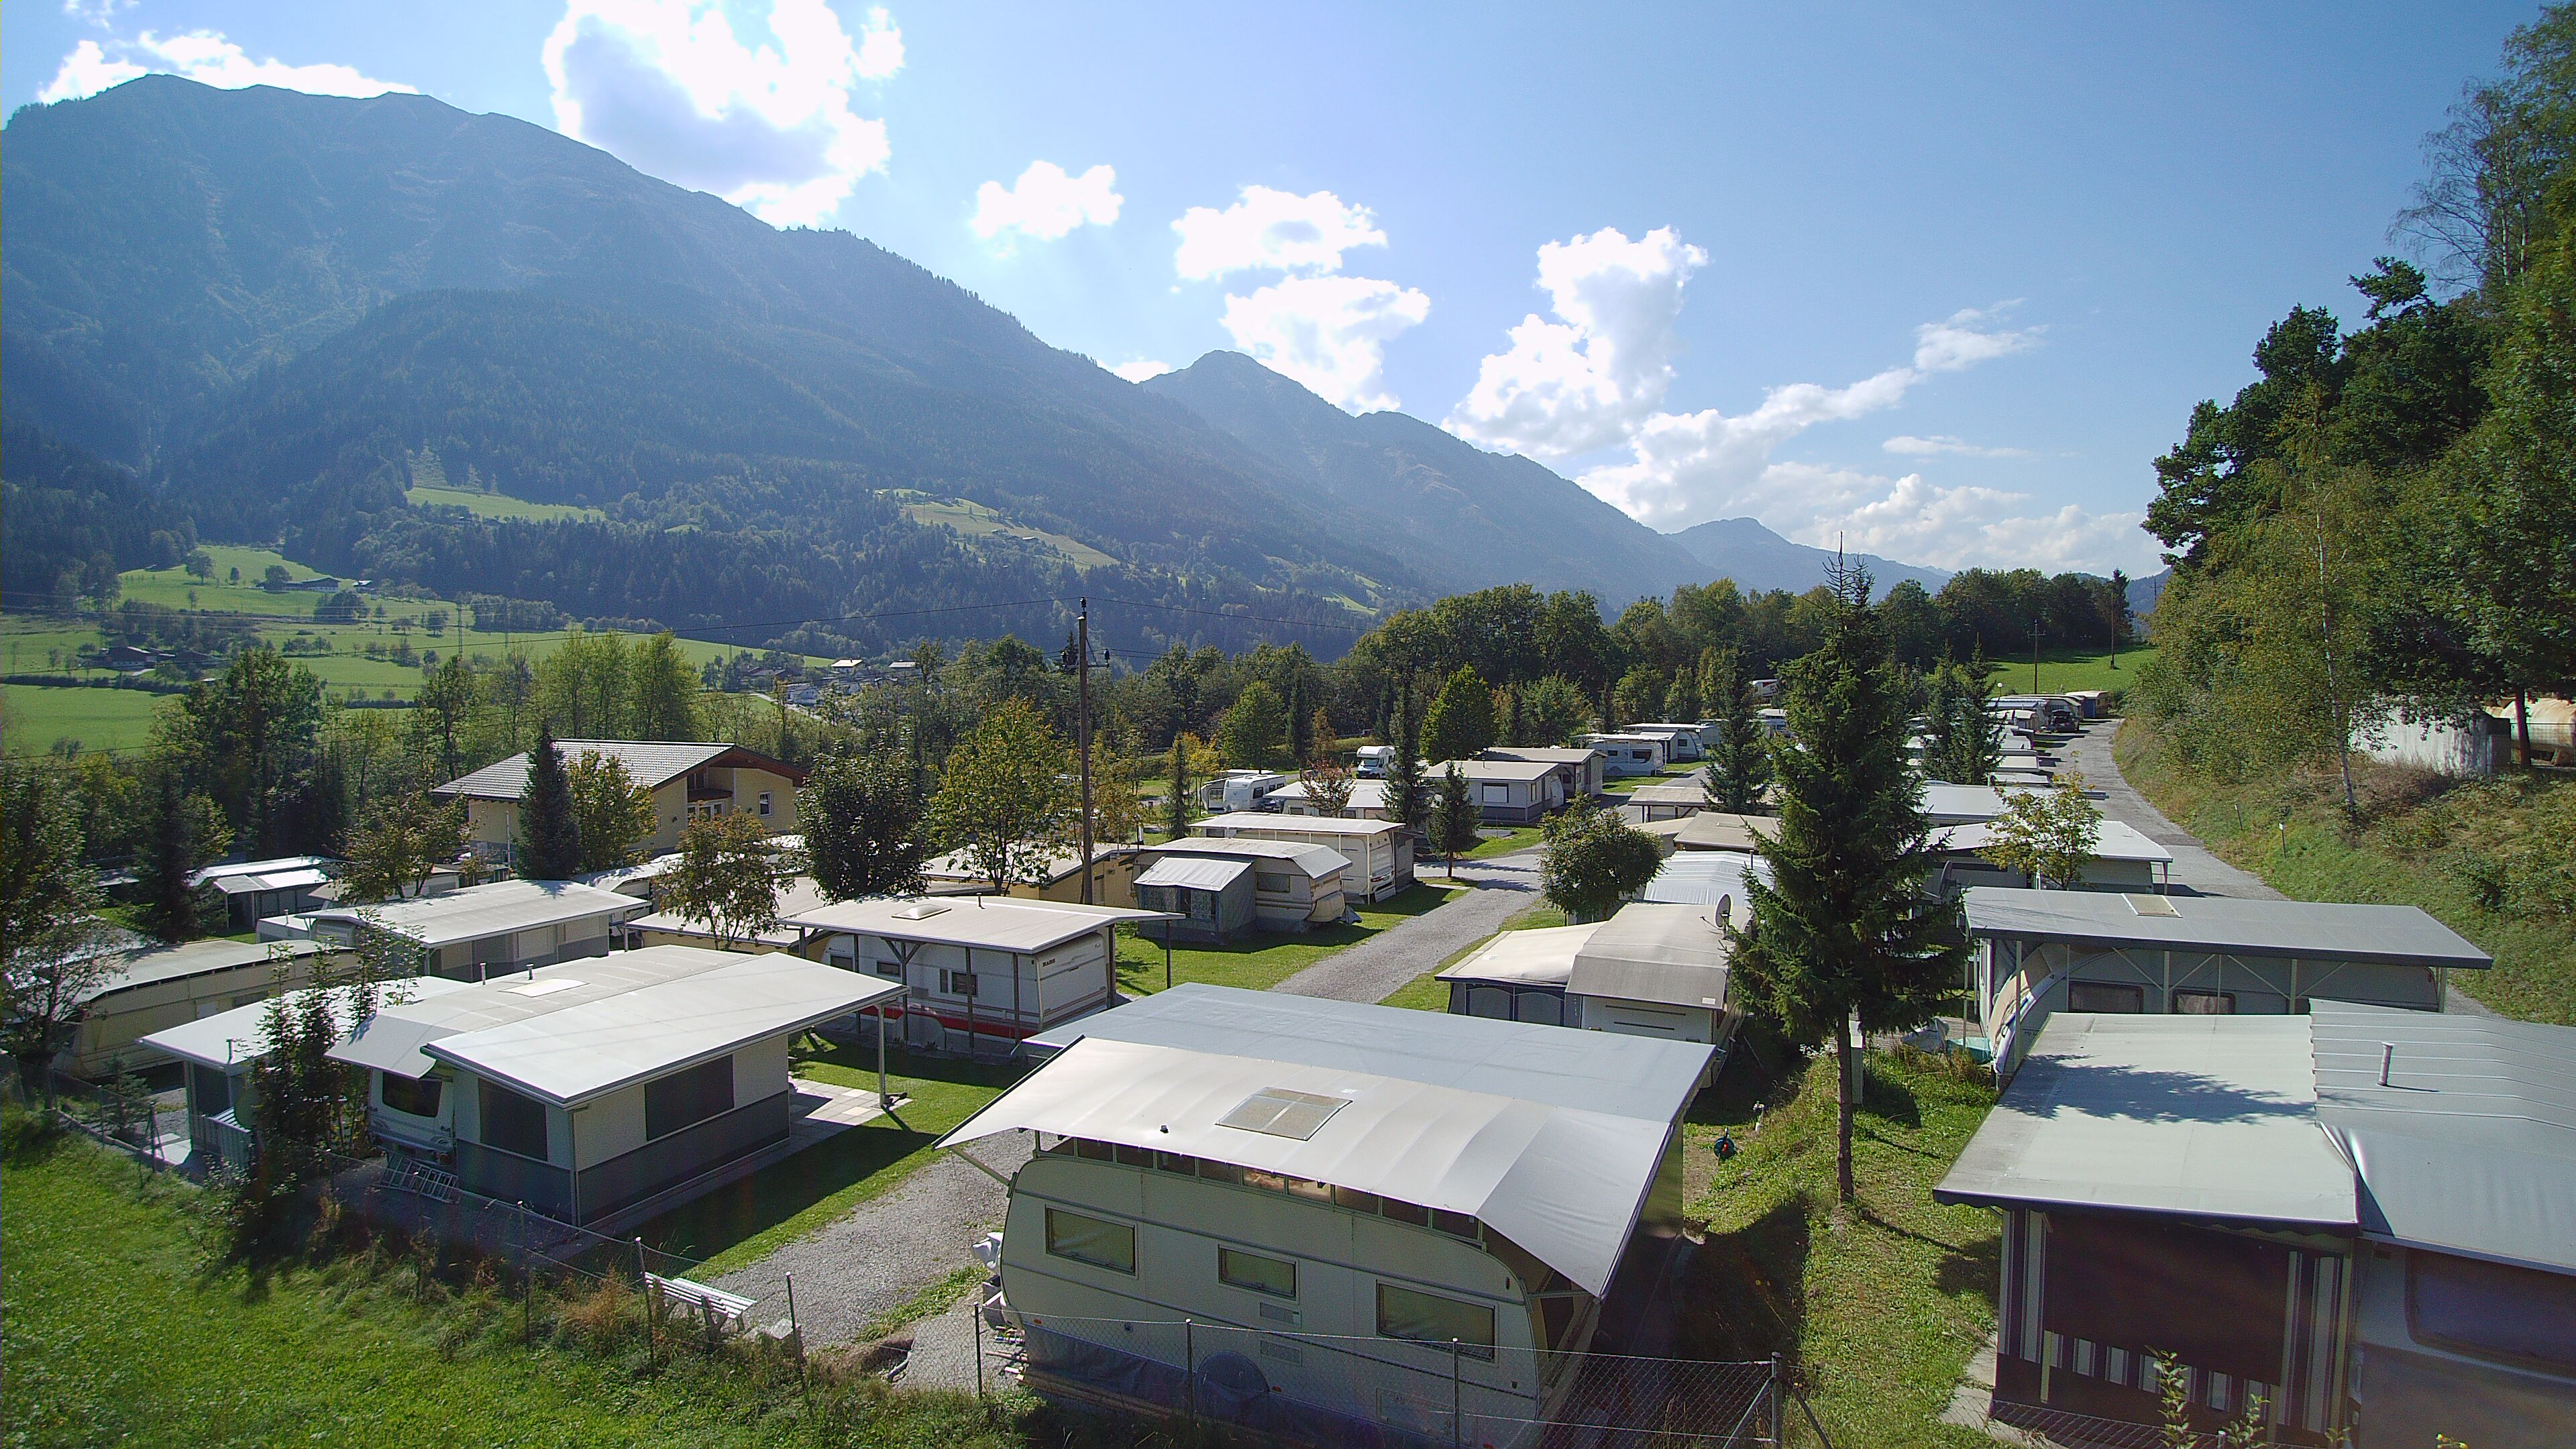 Camping St. Veit